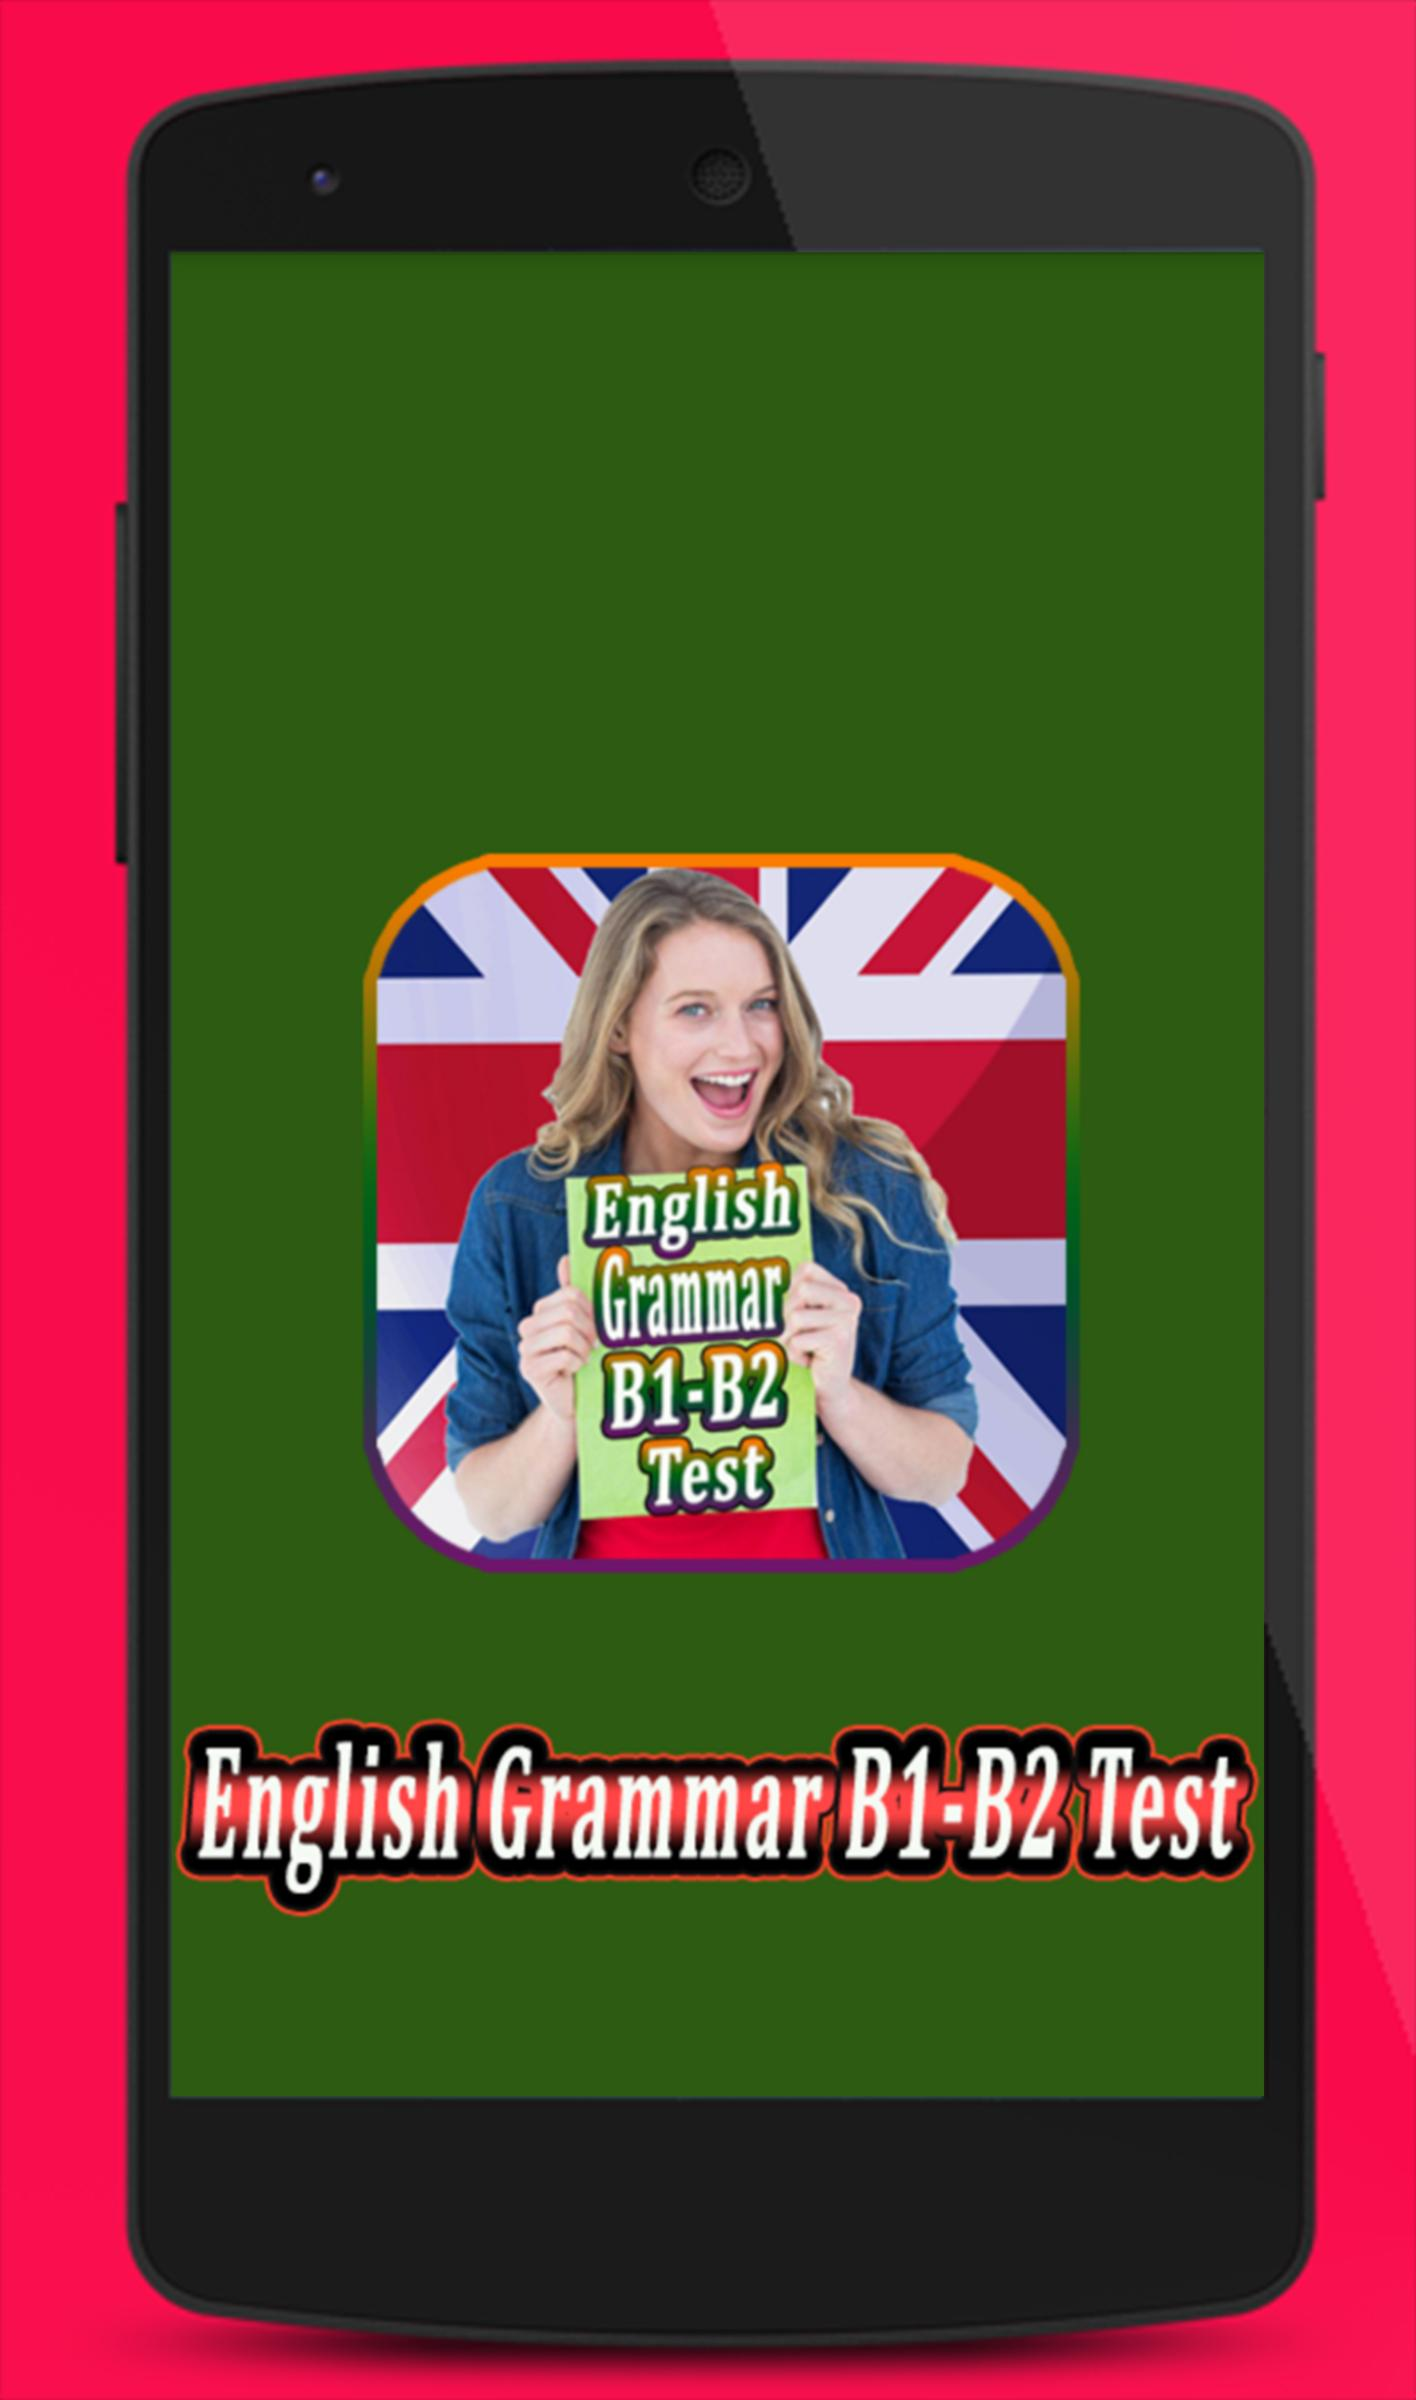 English Grammar Test B1-B2 for Android - APK Download